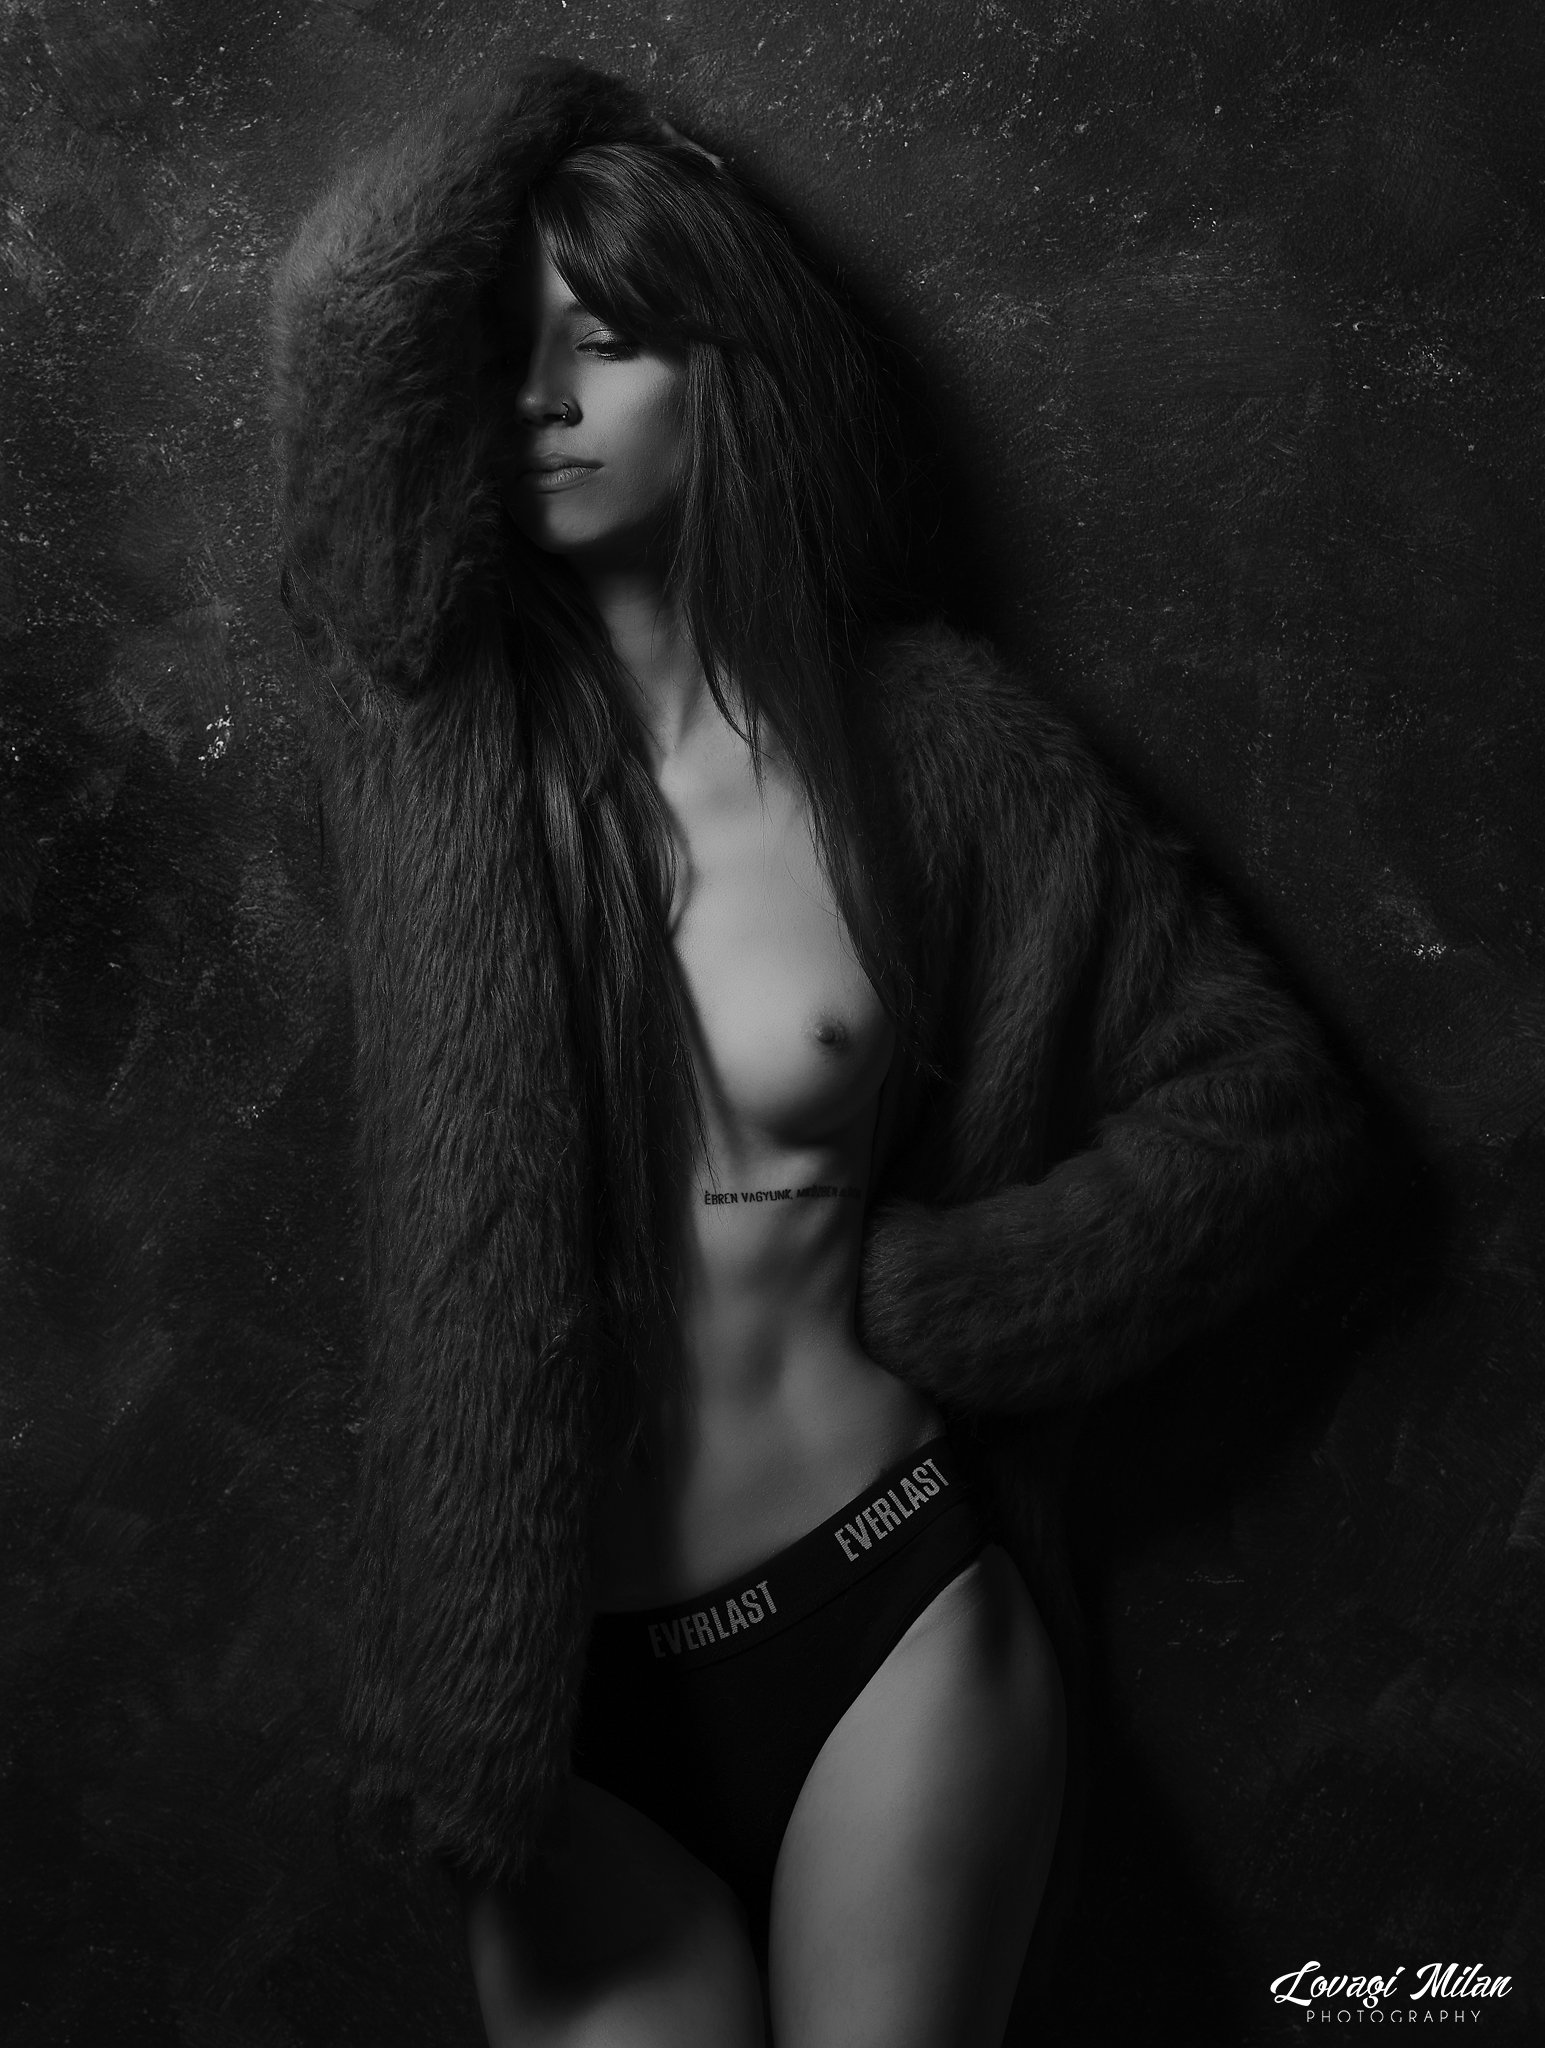 nude,girl,glamour,beauty, Lovagi Milán